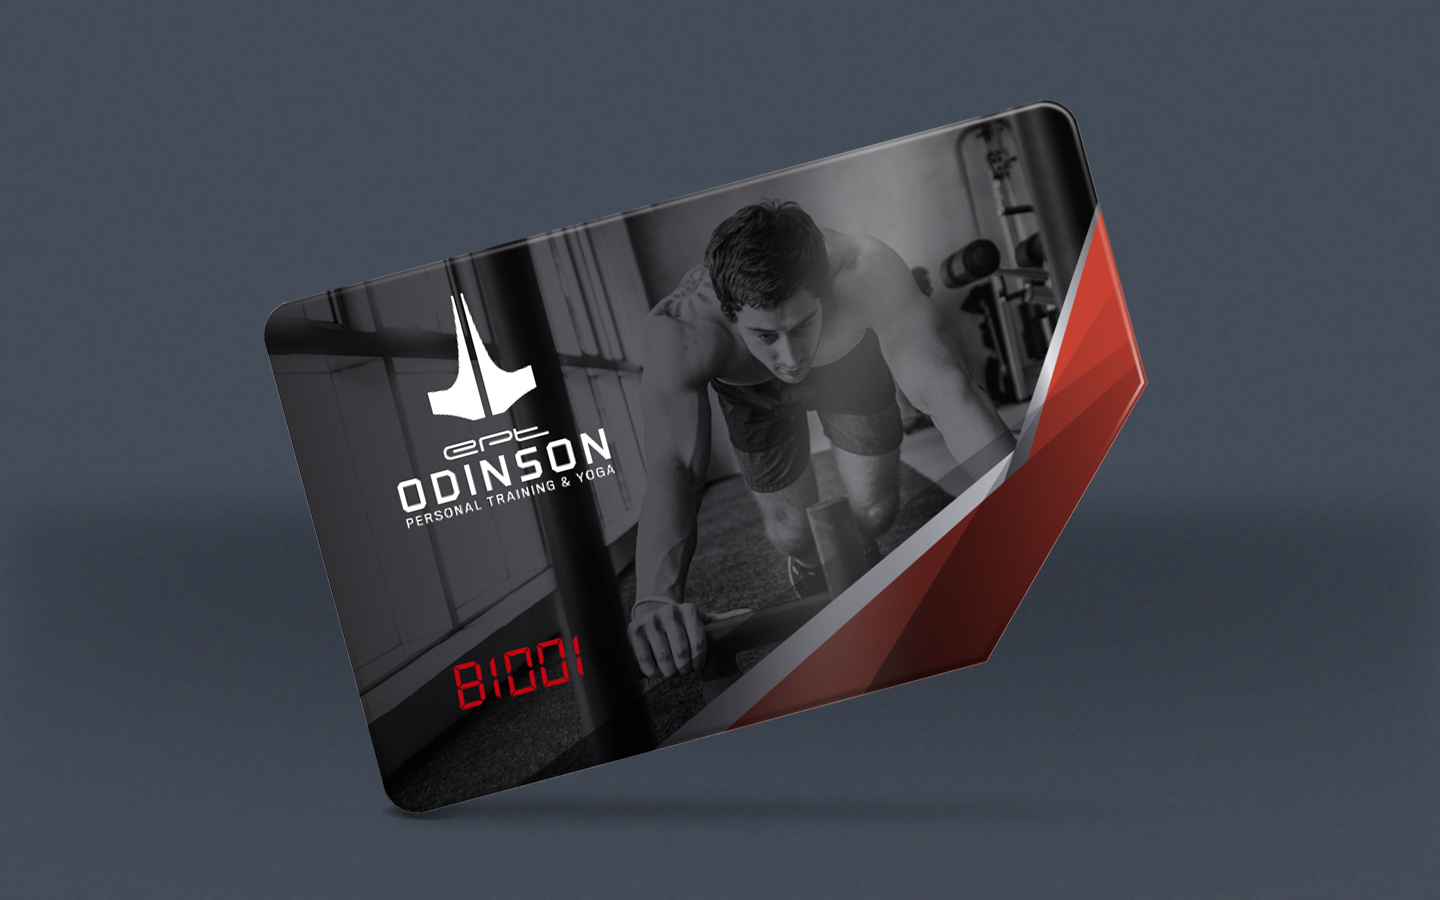 membership-card-odinson-front-old